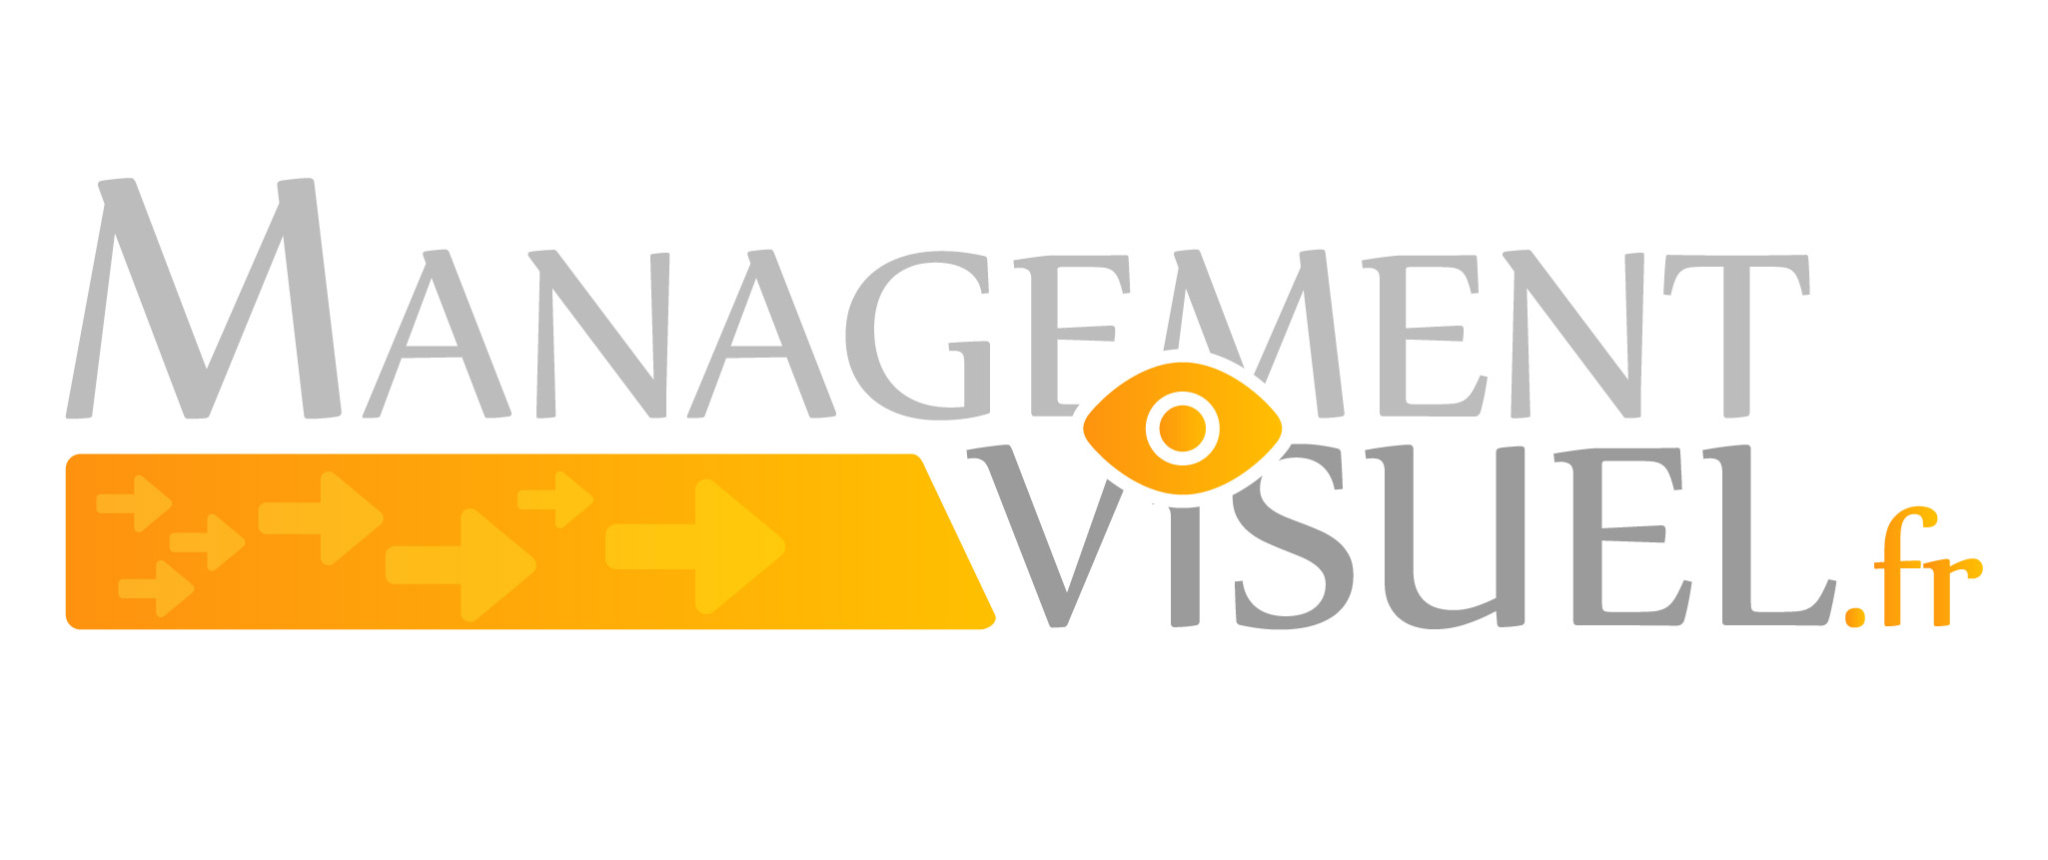 Blog Management Visuel